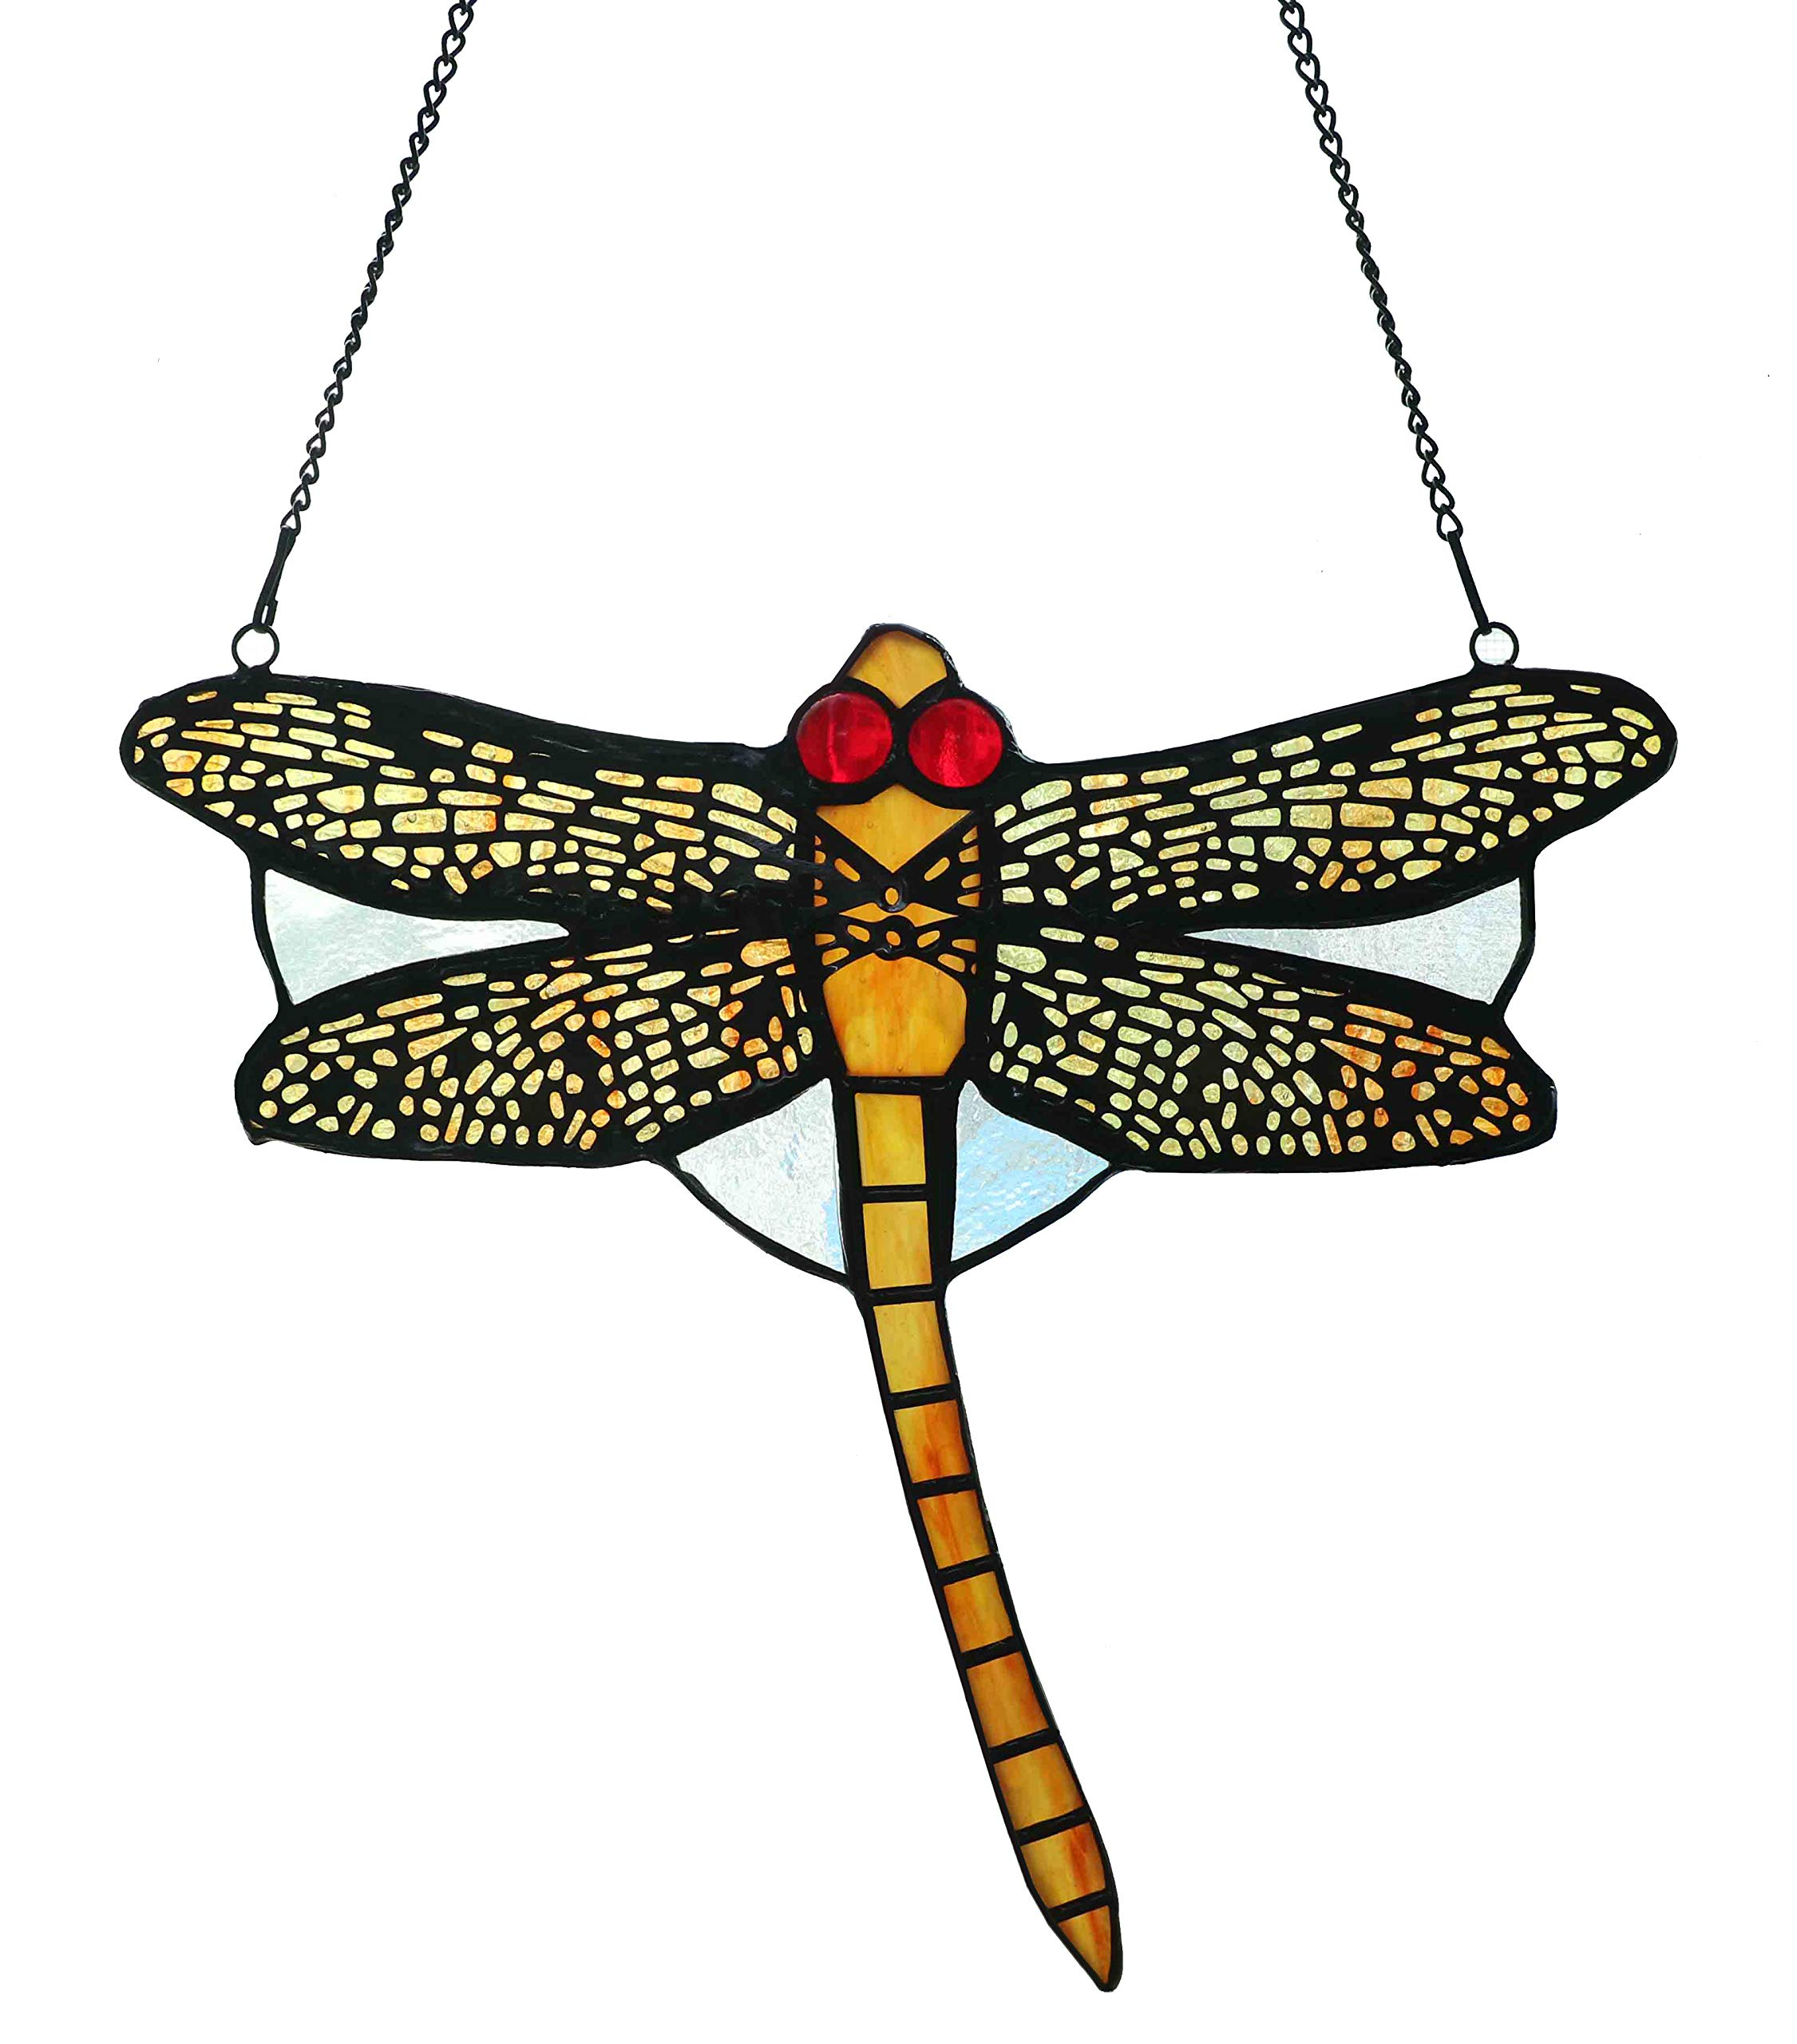 Alivagar Stained Glass Holiday Decor Suncatcher Dragonfly Ornament, 8 1/2'' x 7 1/2''